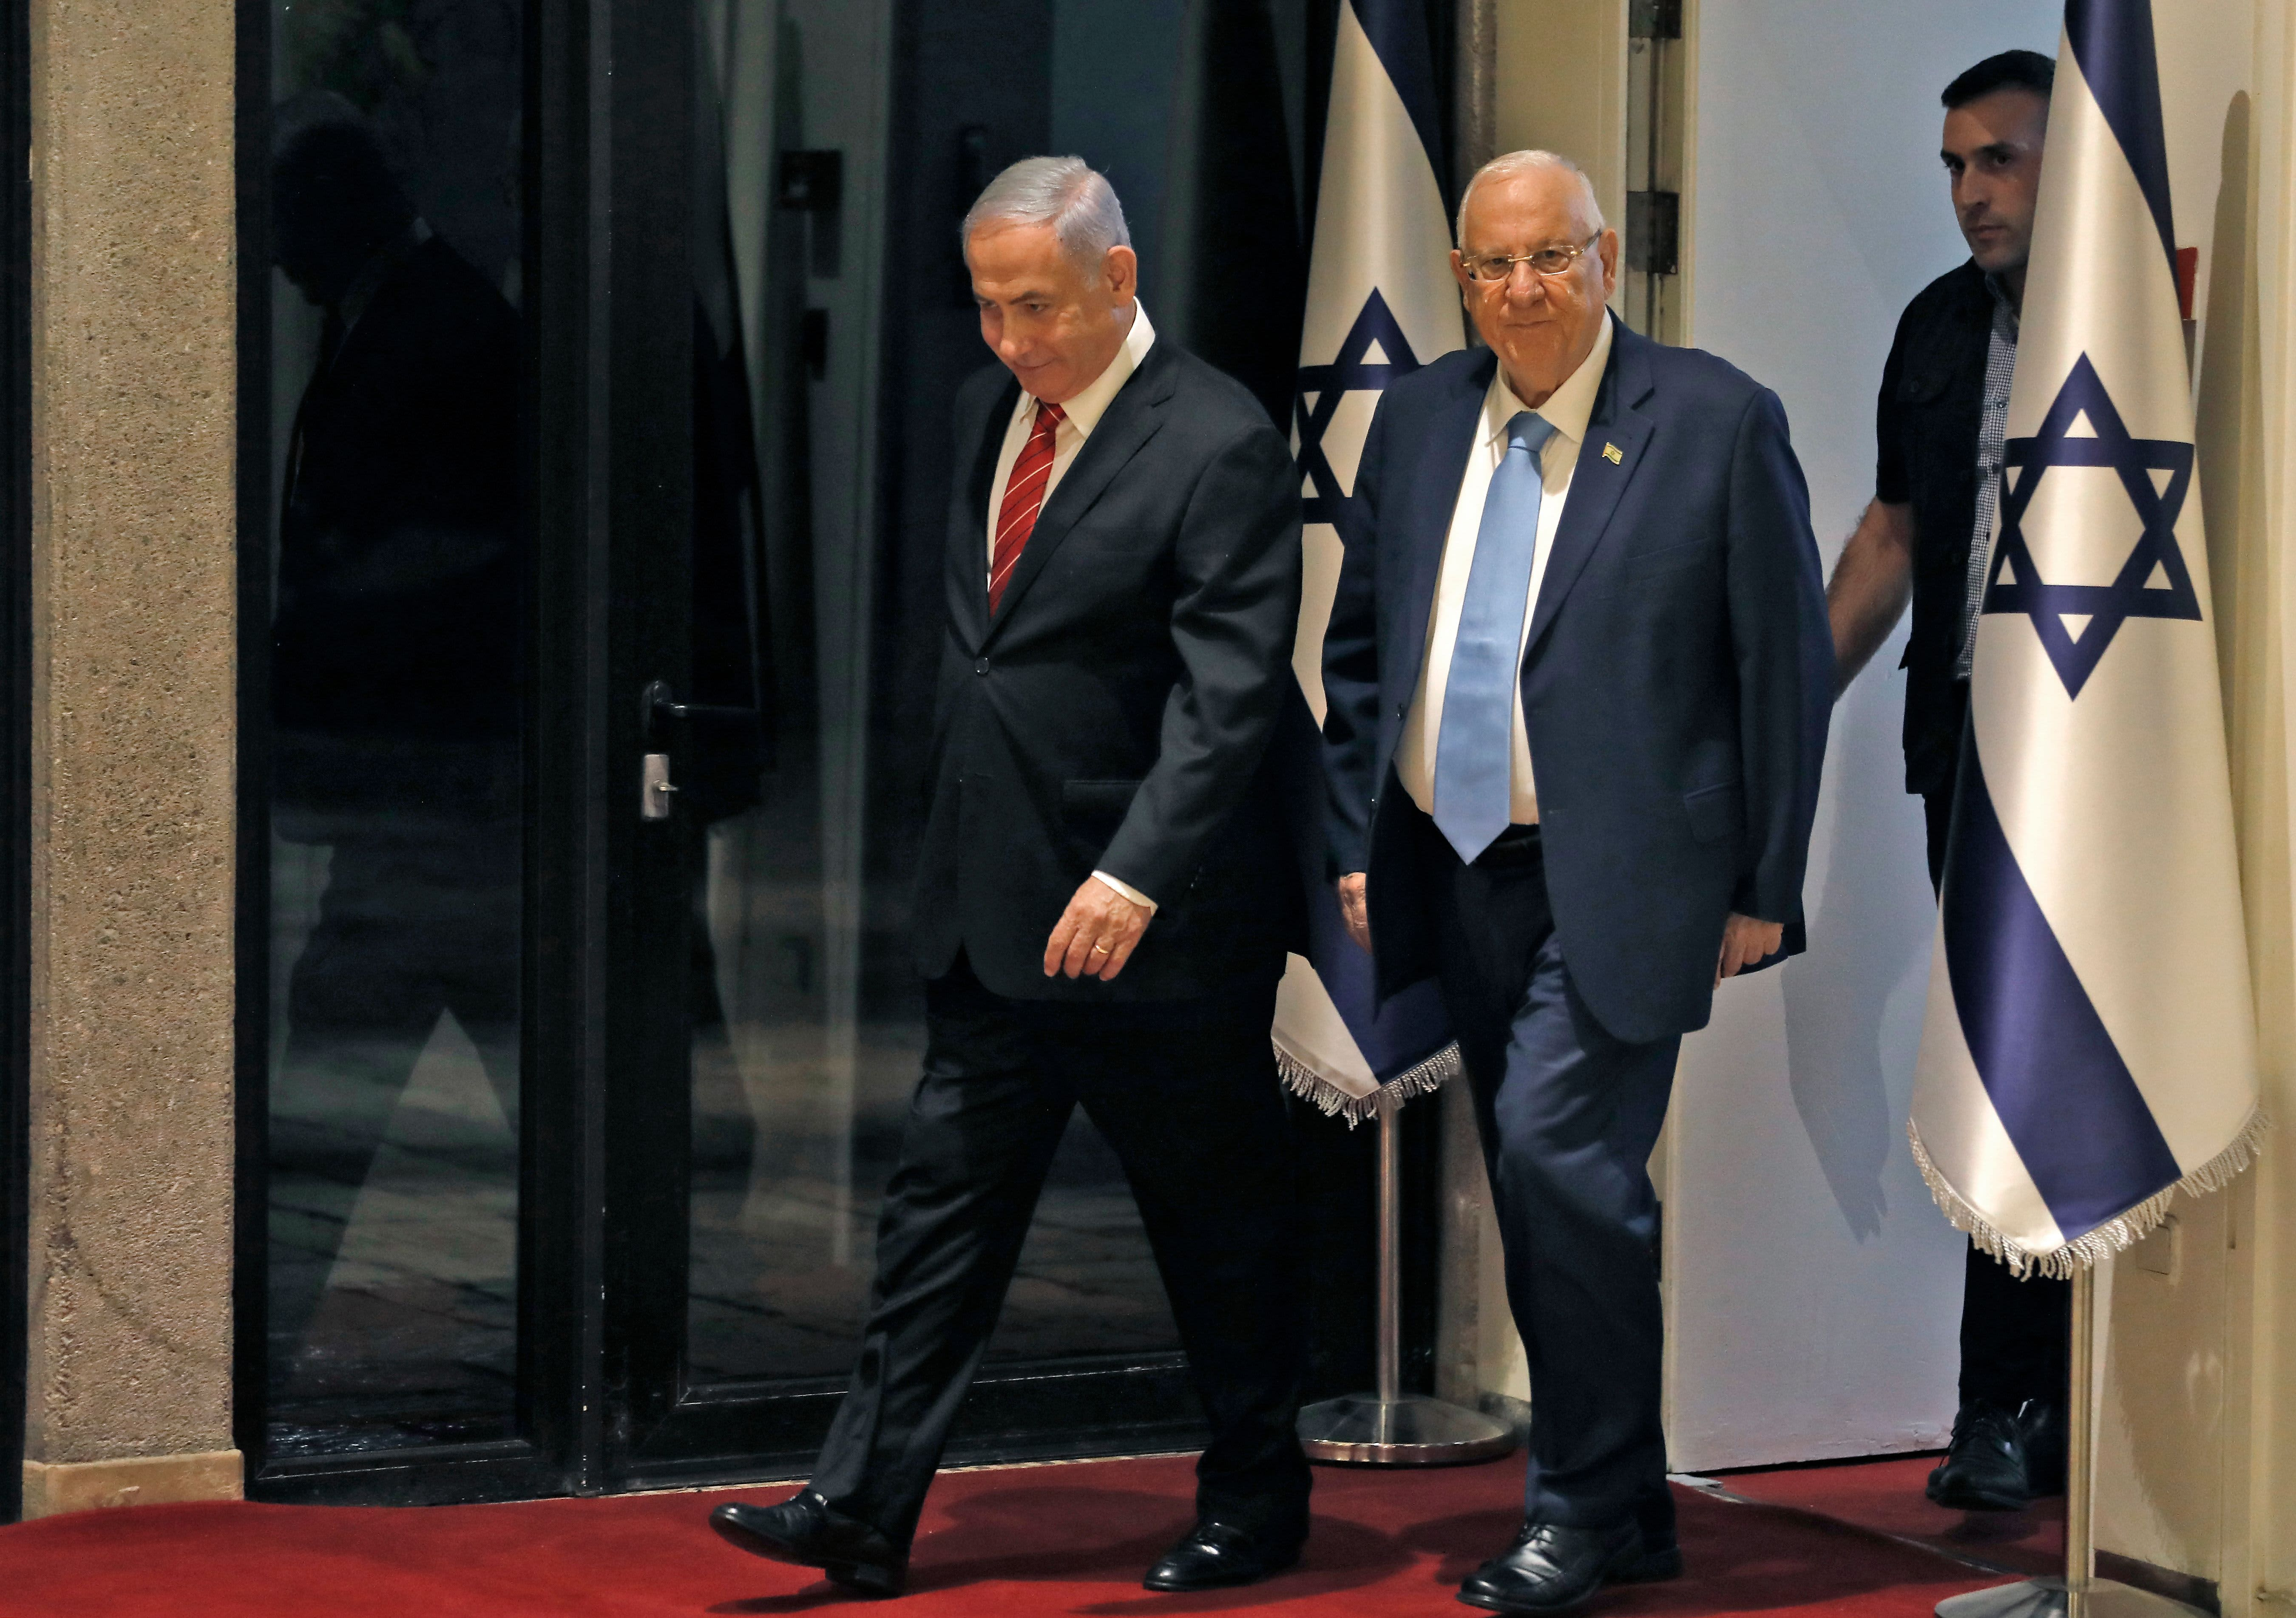 Netanyahu tapped by Israel's president to assemble new government